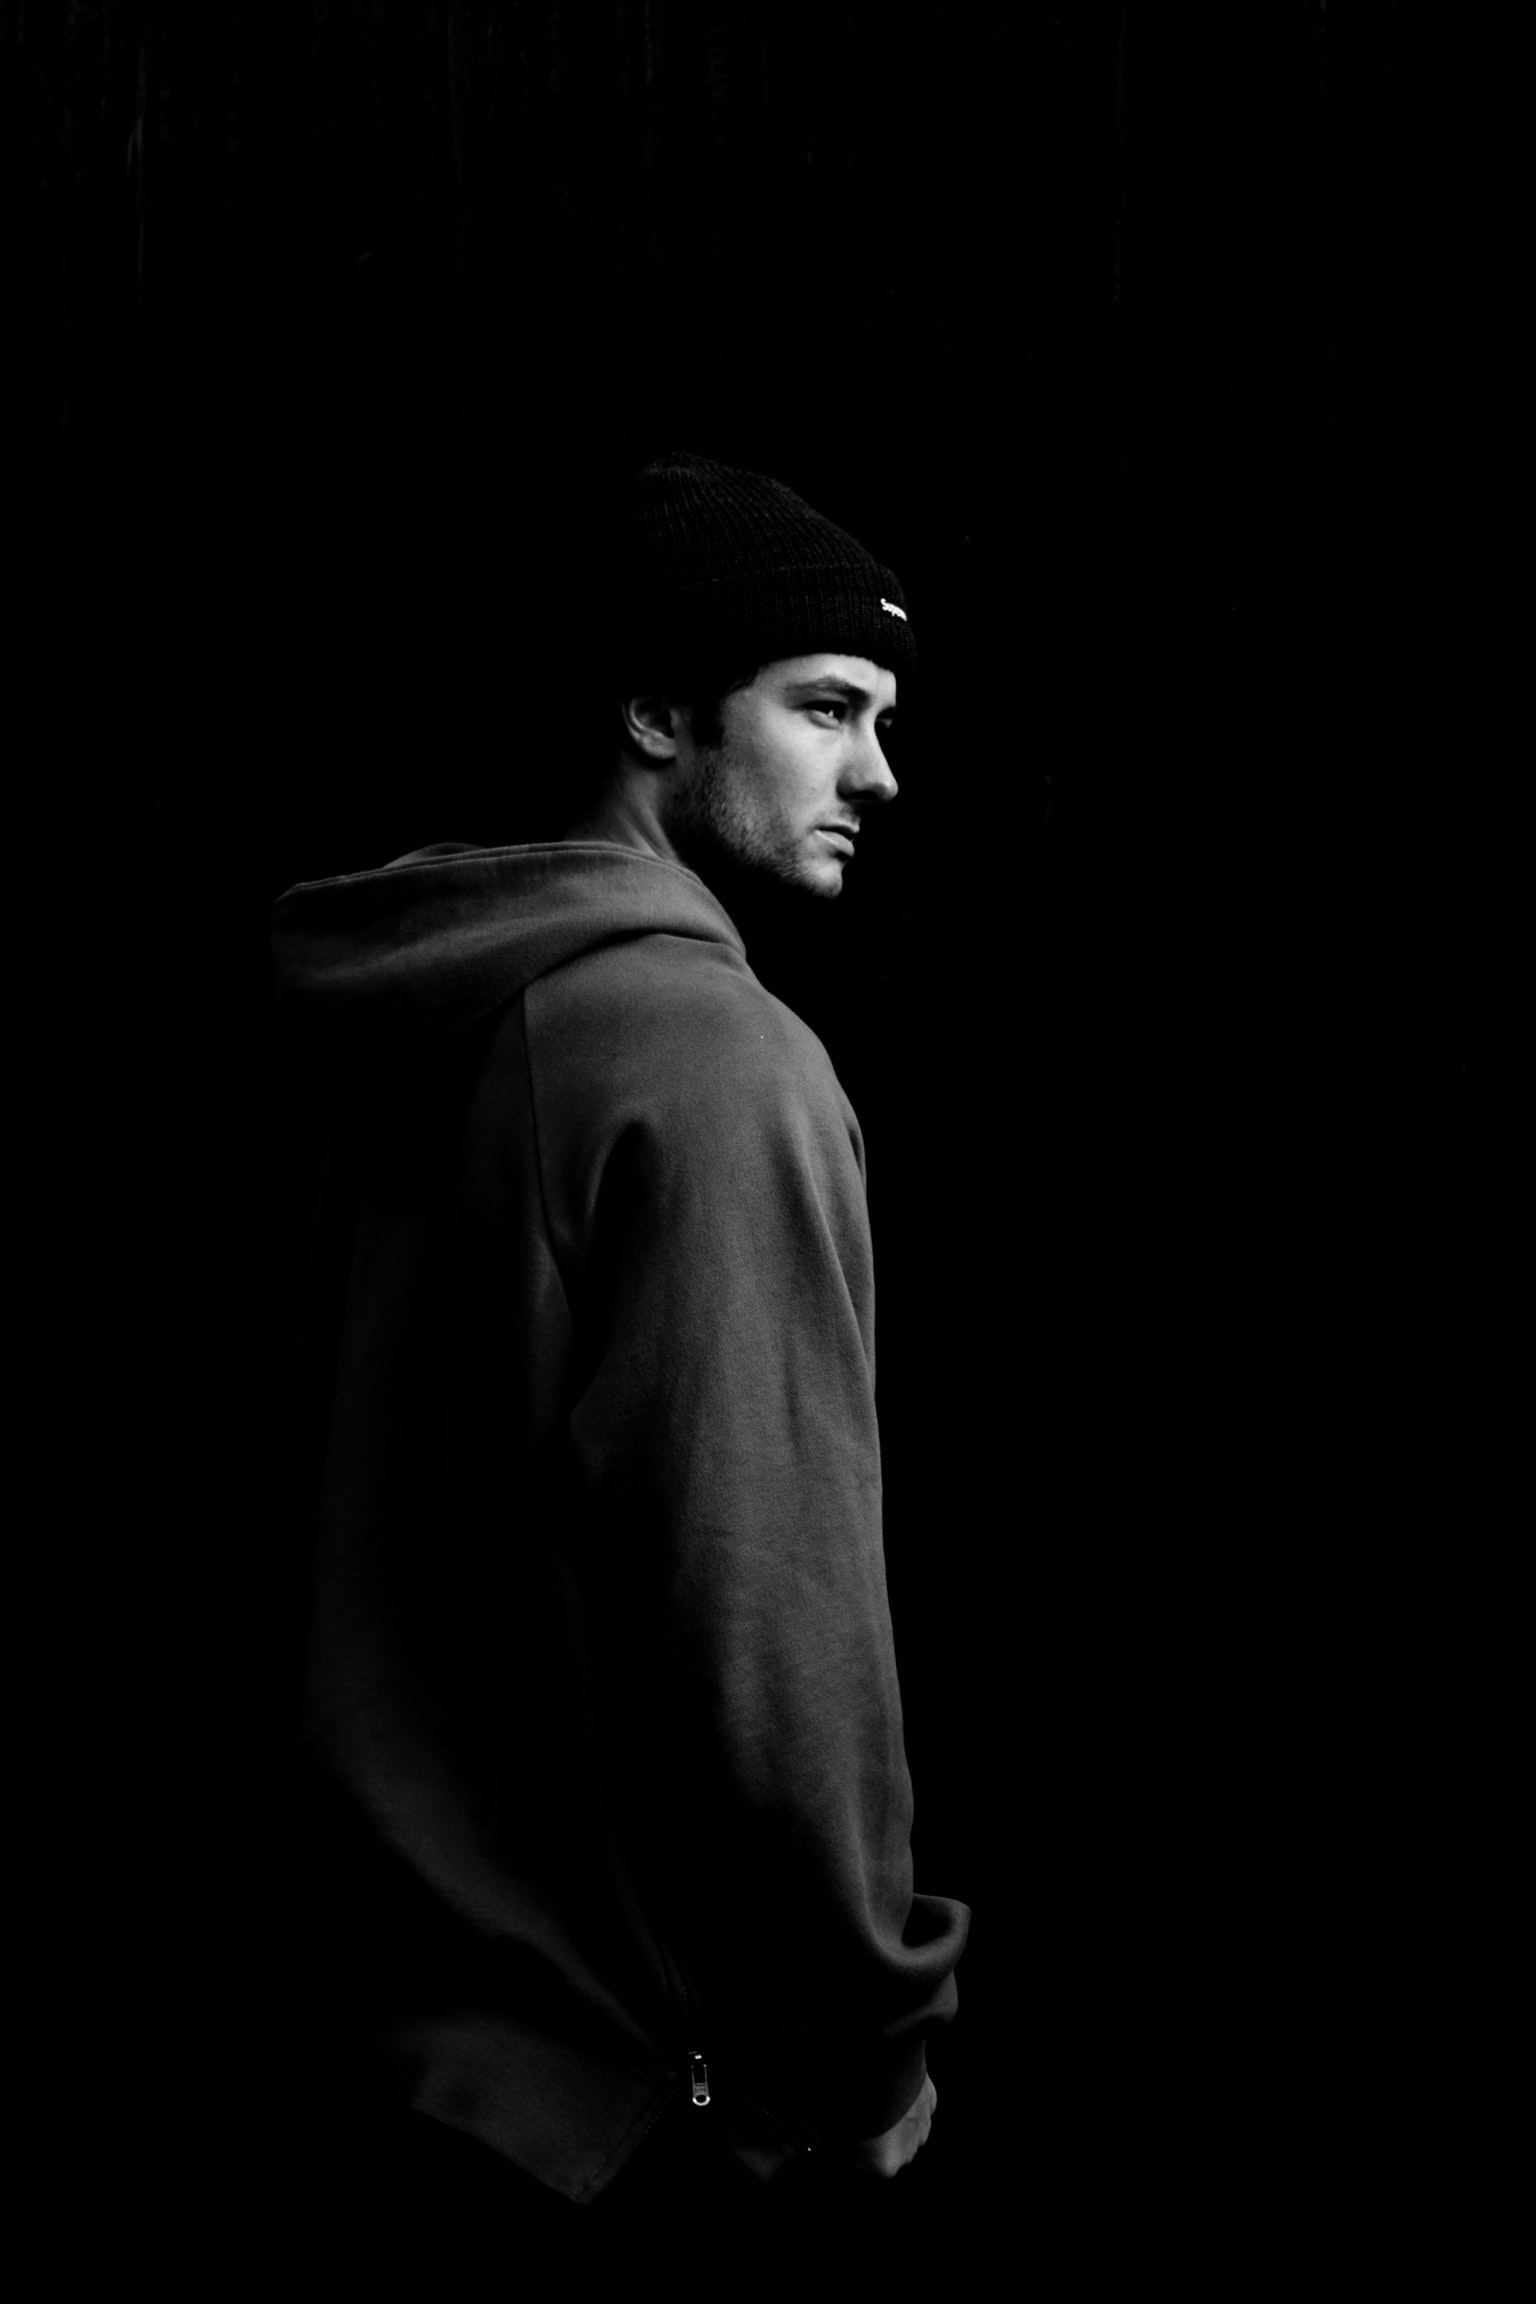 grayscale photo of man wearing hoodie and knit cap